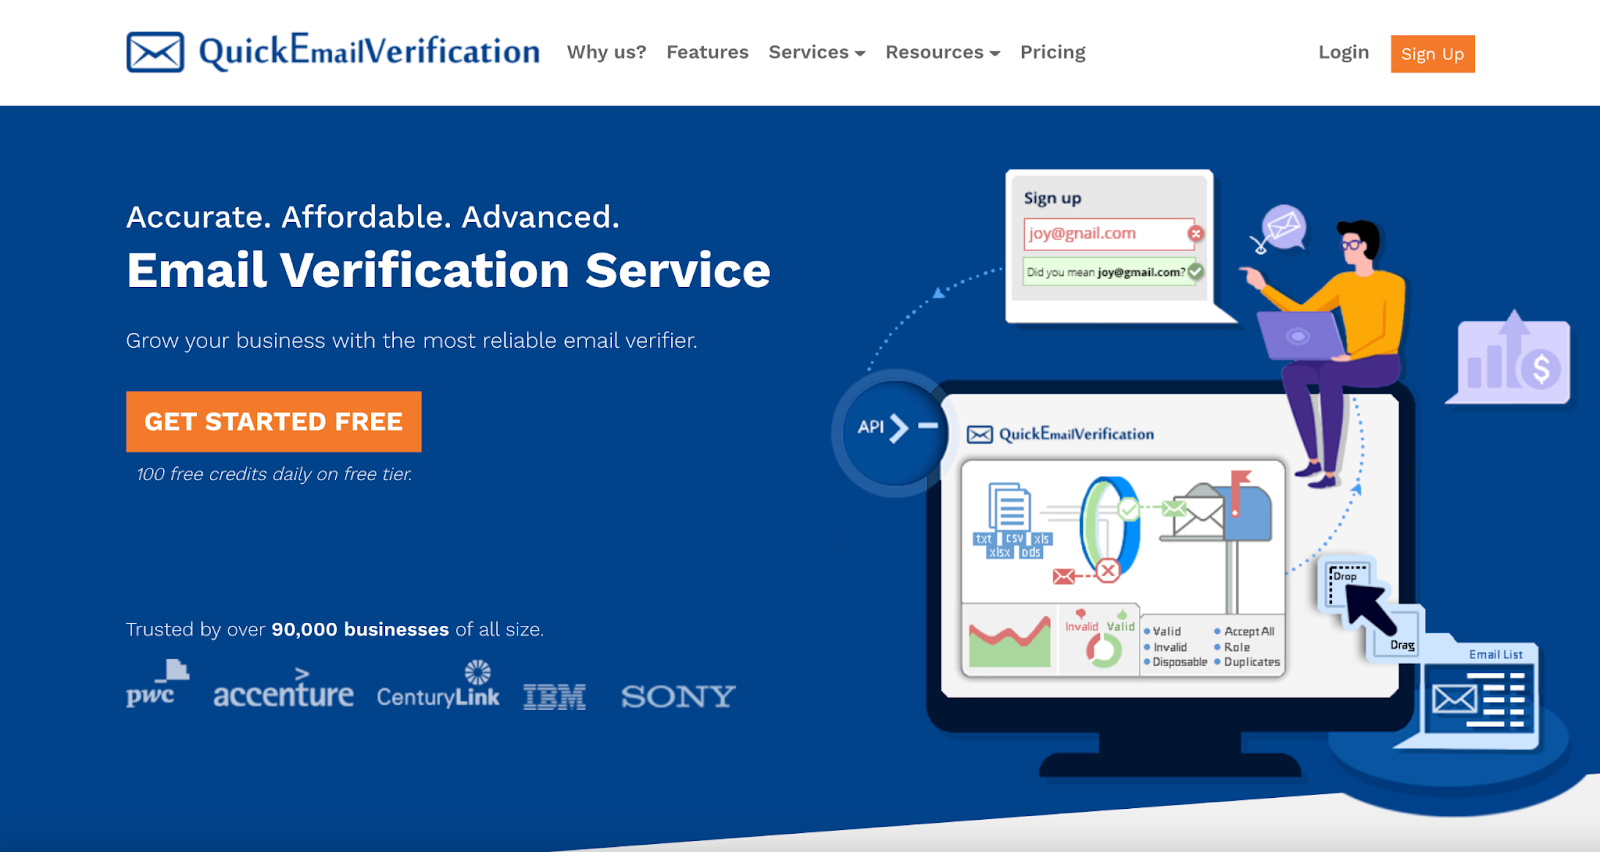 QuickEmailVerification Homepage